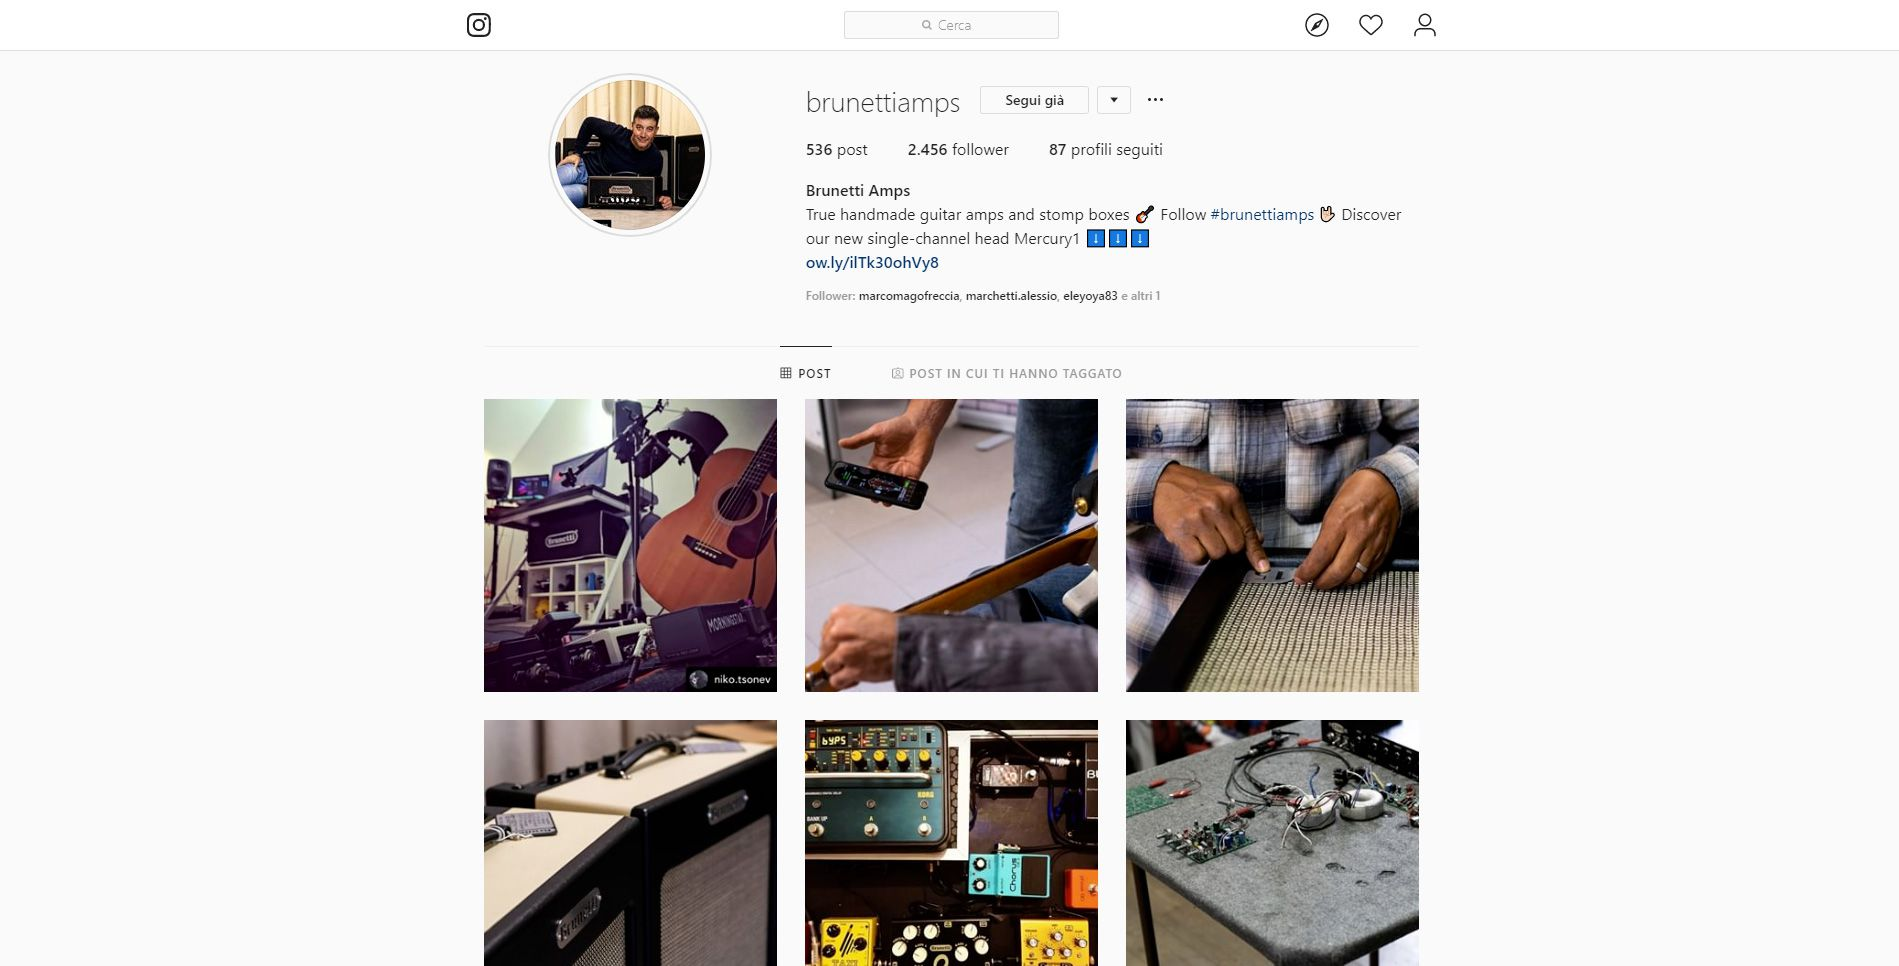 La pagina Instagram di Brunetti Tube Amplification.